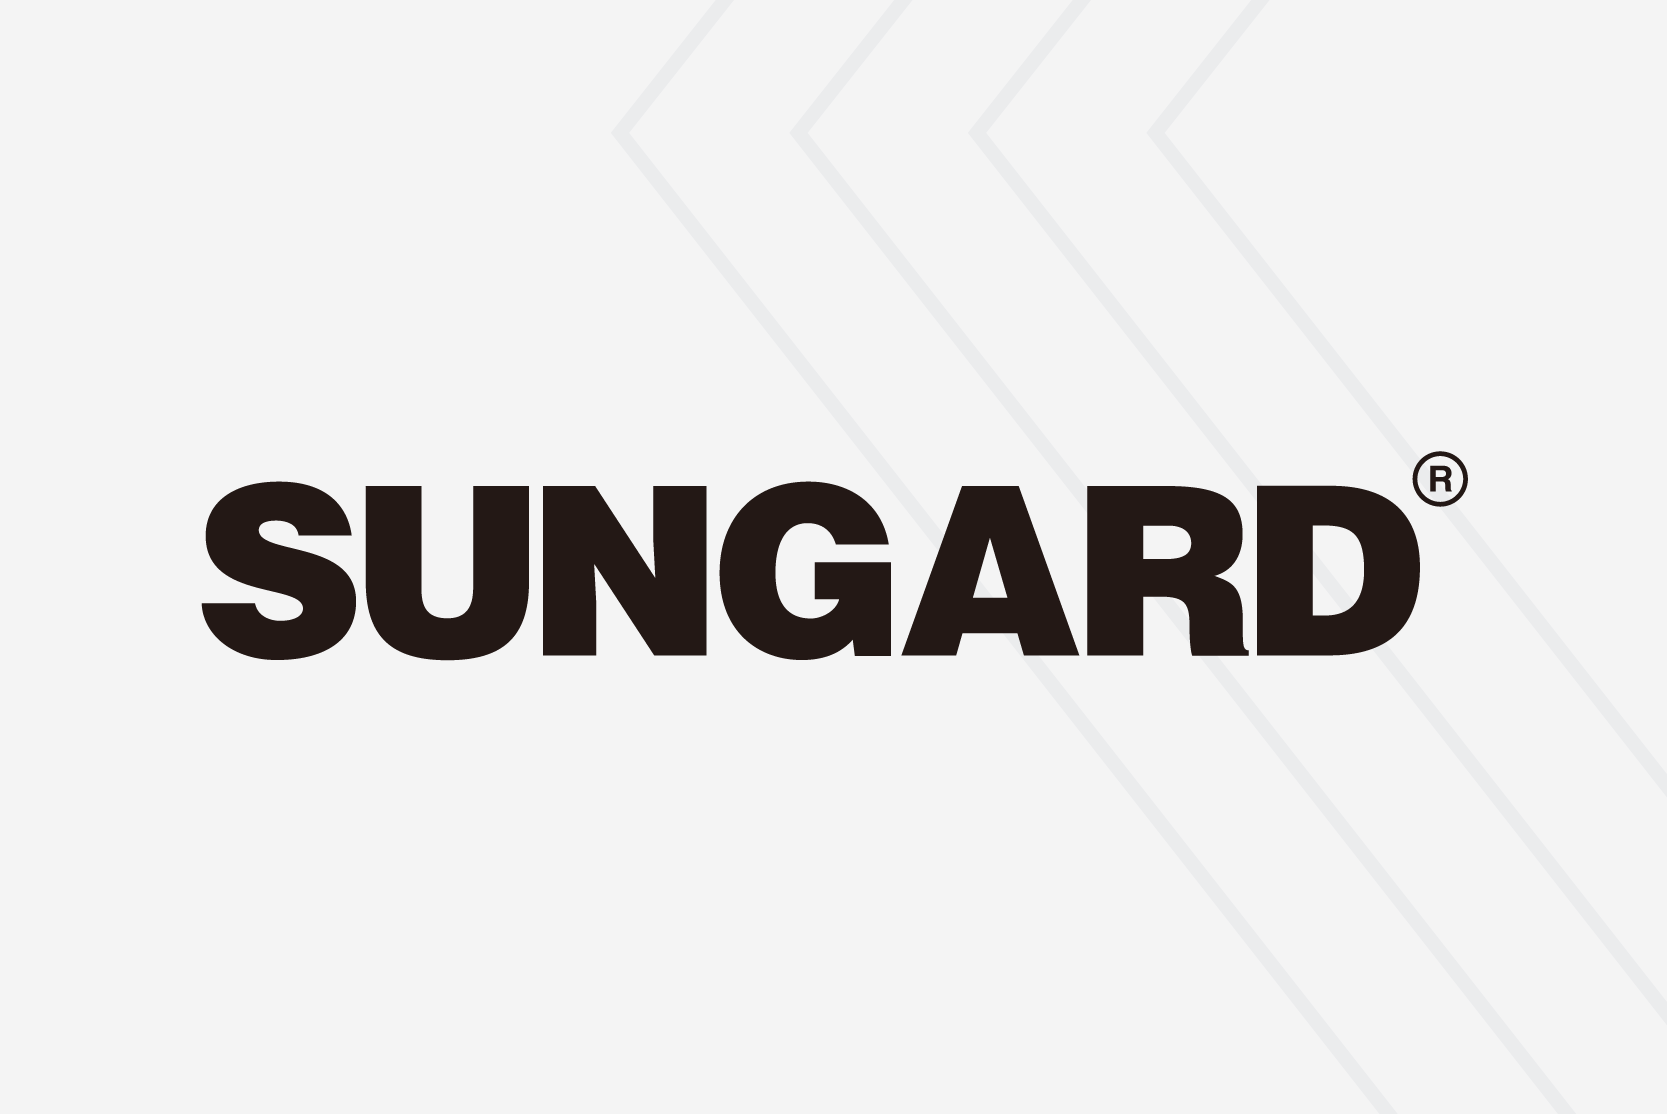 Sunguard case study preview image